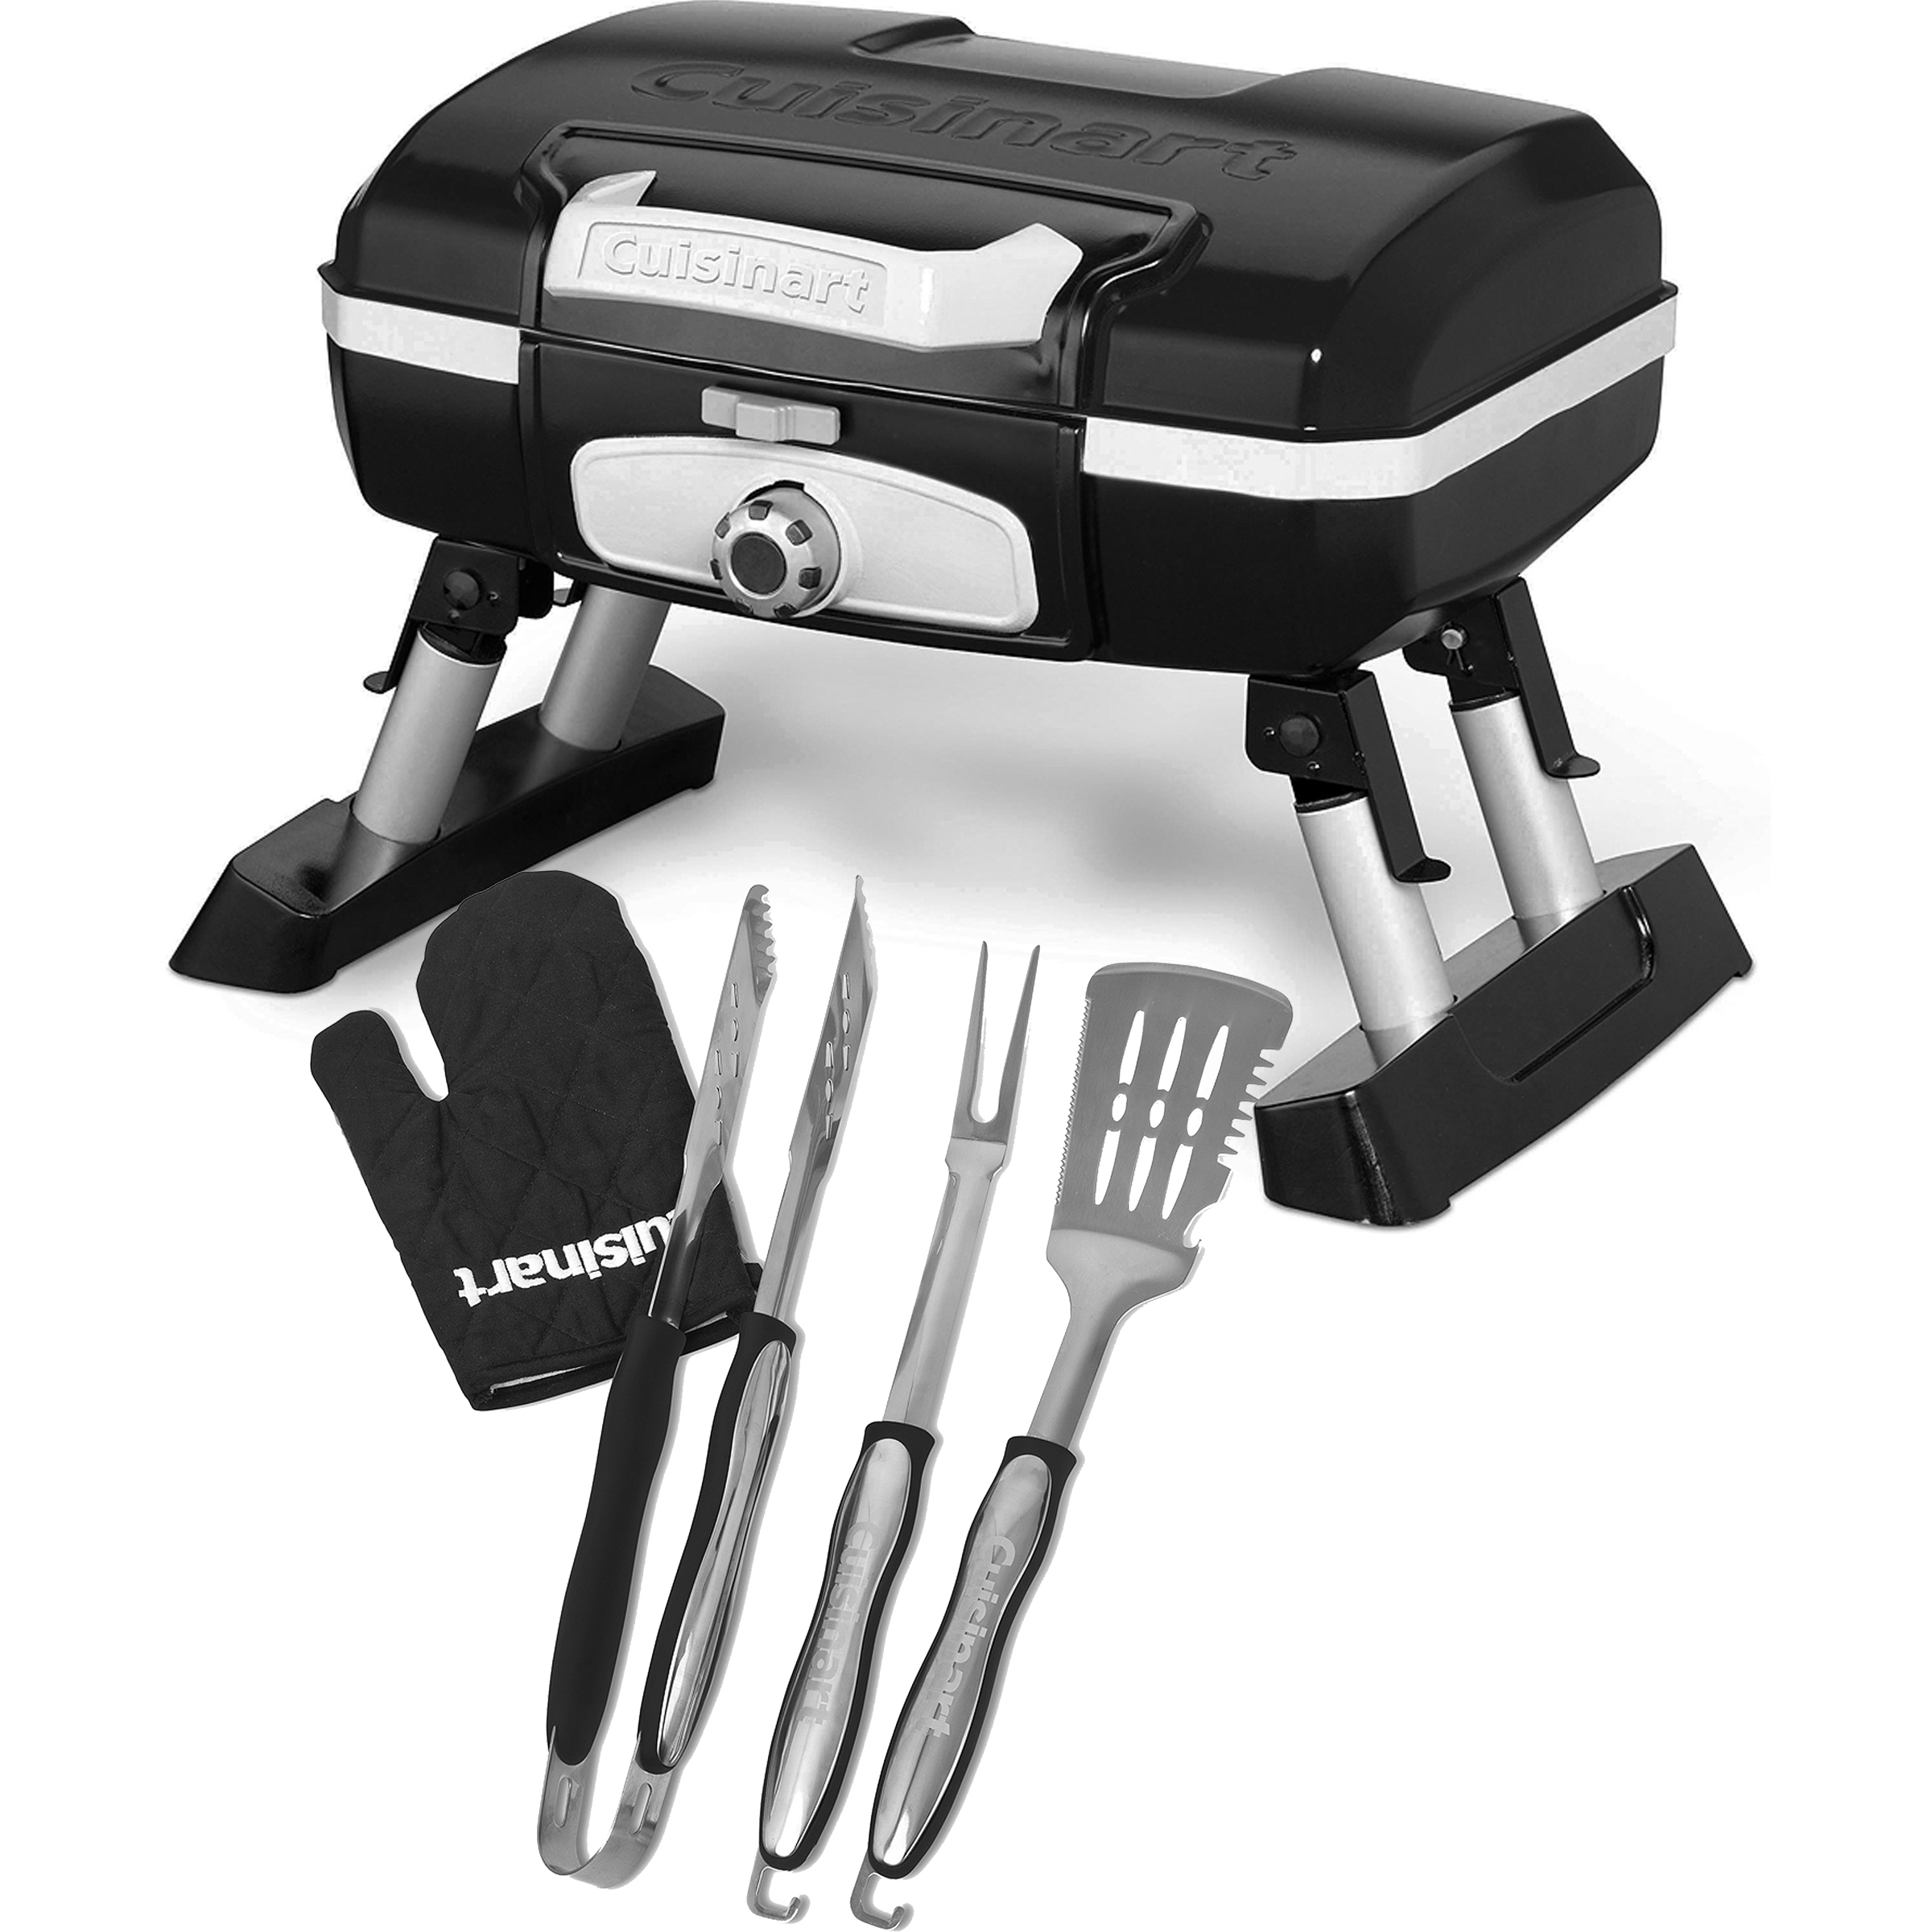 Cuisinart  CGG-180TB Petit Gourmet Tabletop Gas Grill with 3 Piece Tool Set and BONUS Grill Glove